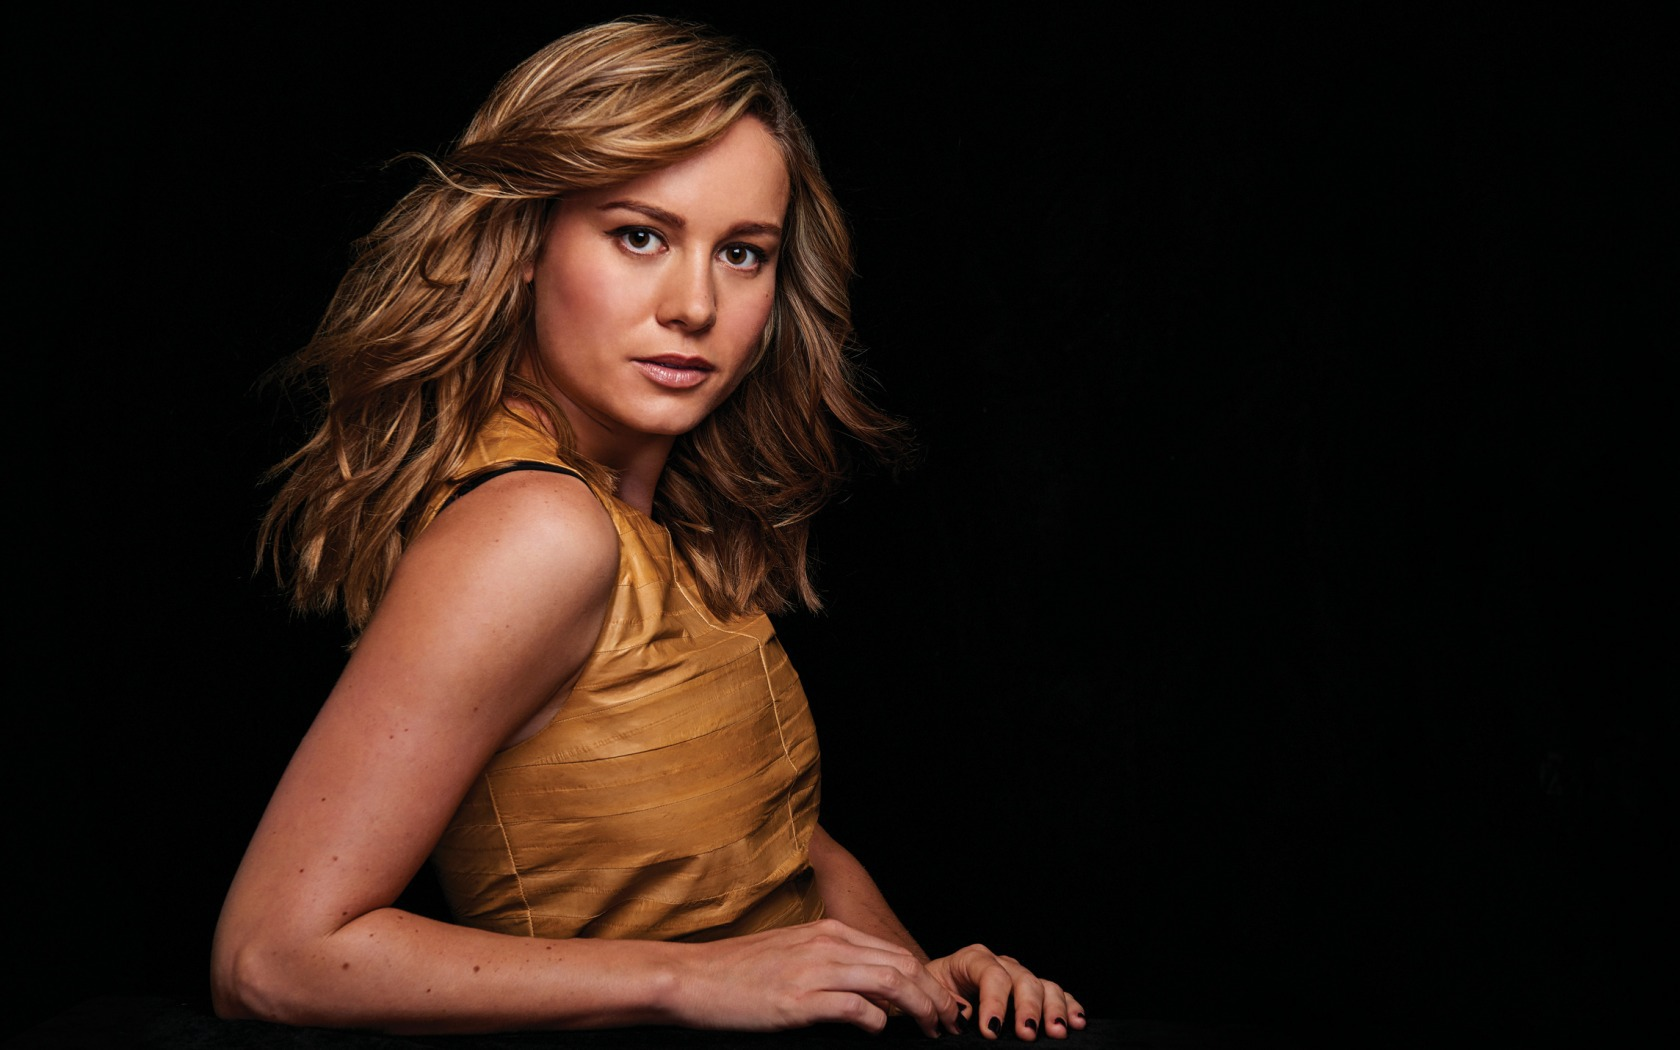 Brie Larson Wallpapers Images Photos Pictures Backgrounds